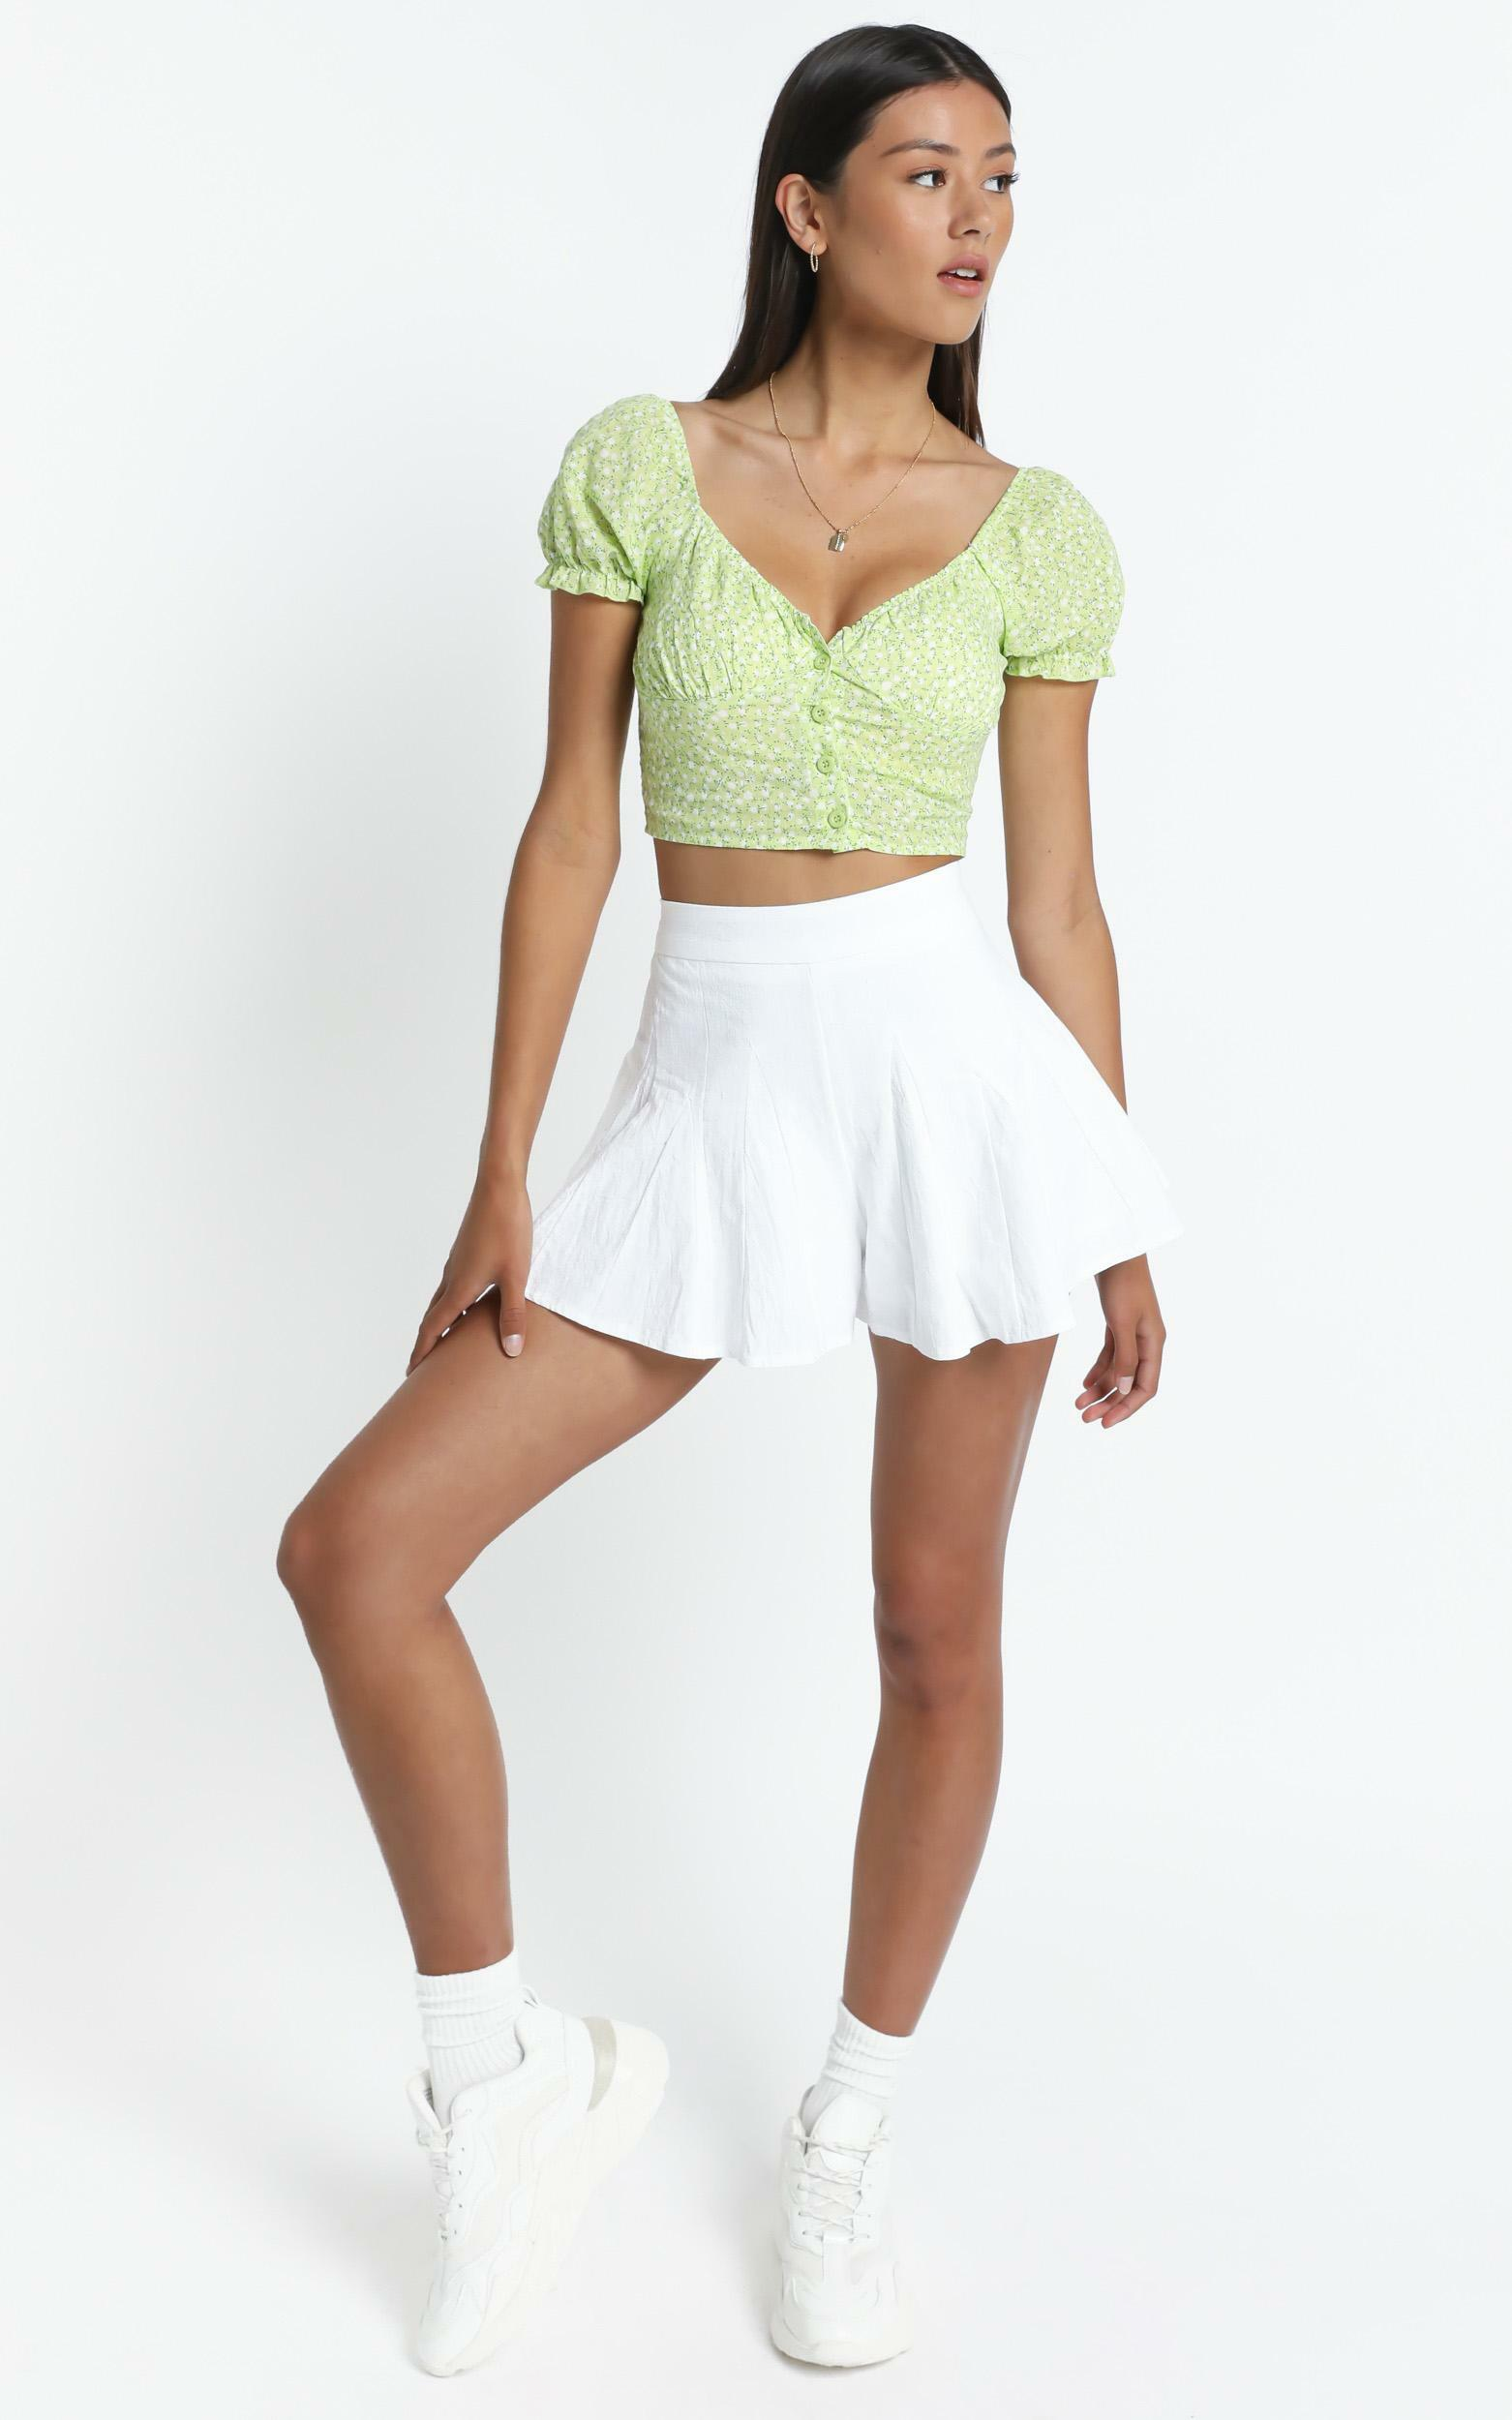 Mellor Top in Lime Floral - S, Green, hi-res image number null